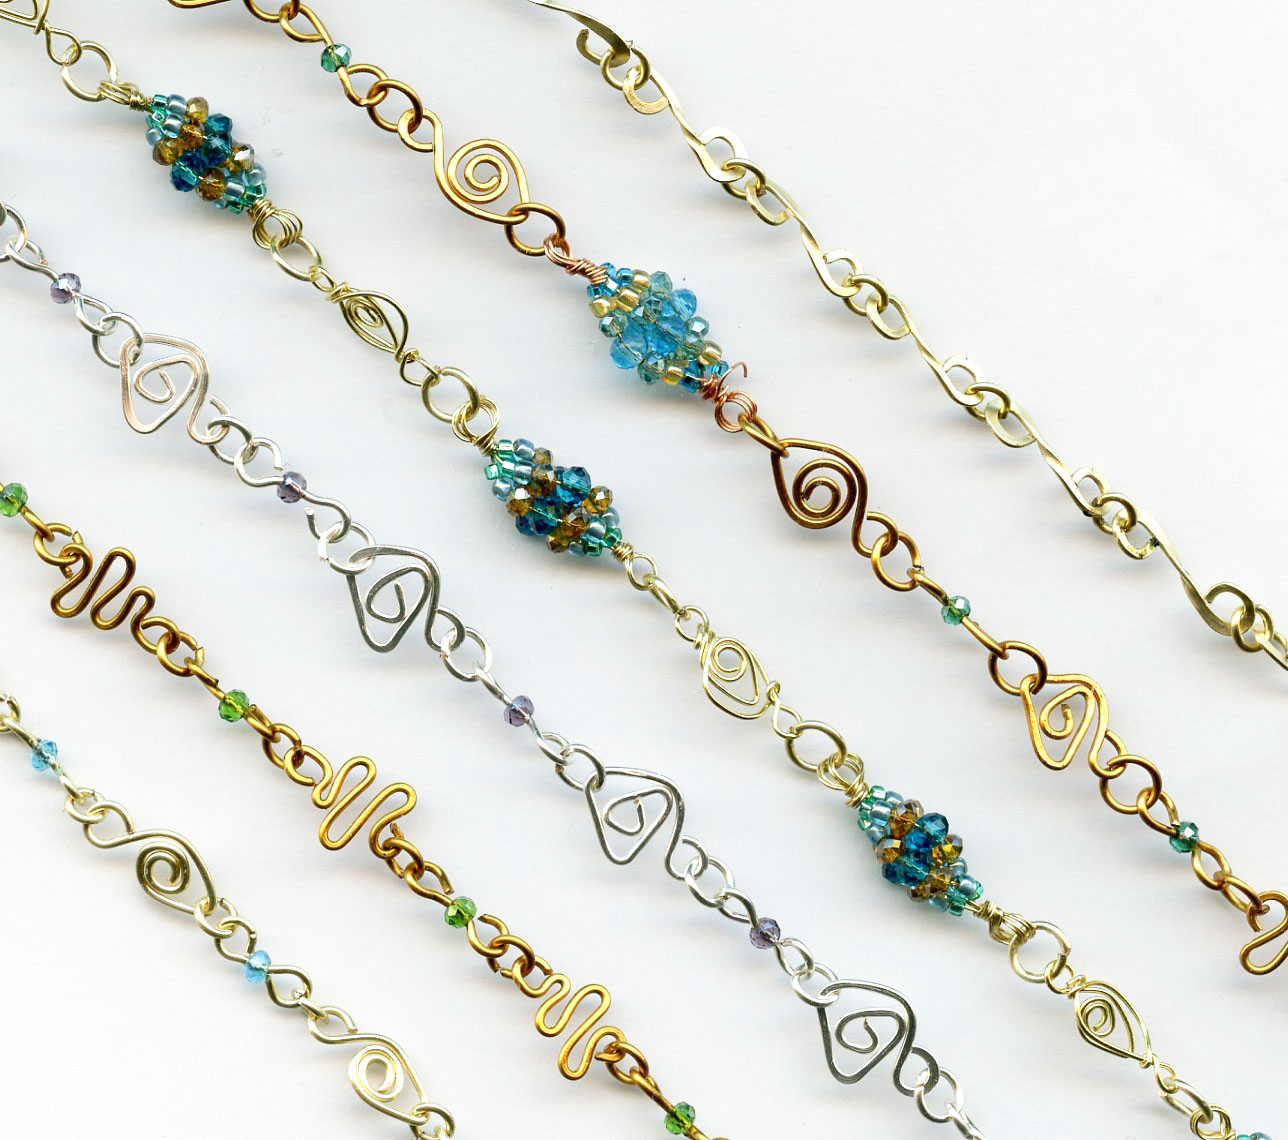 Make Your Own Chains